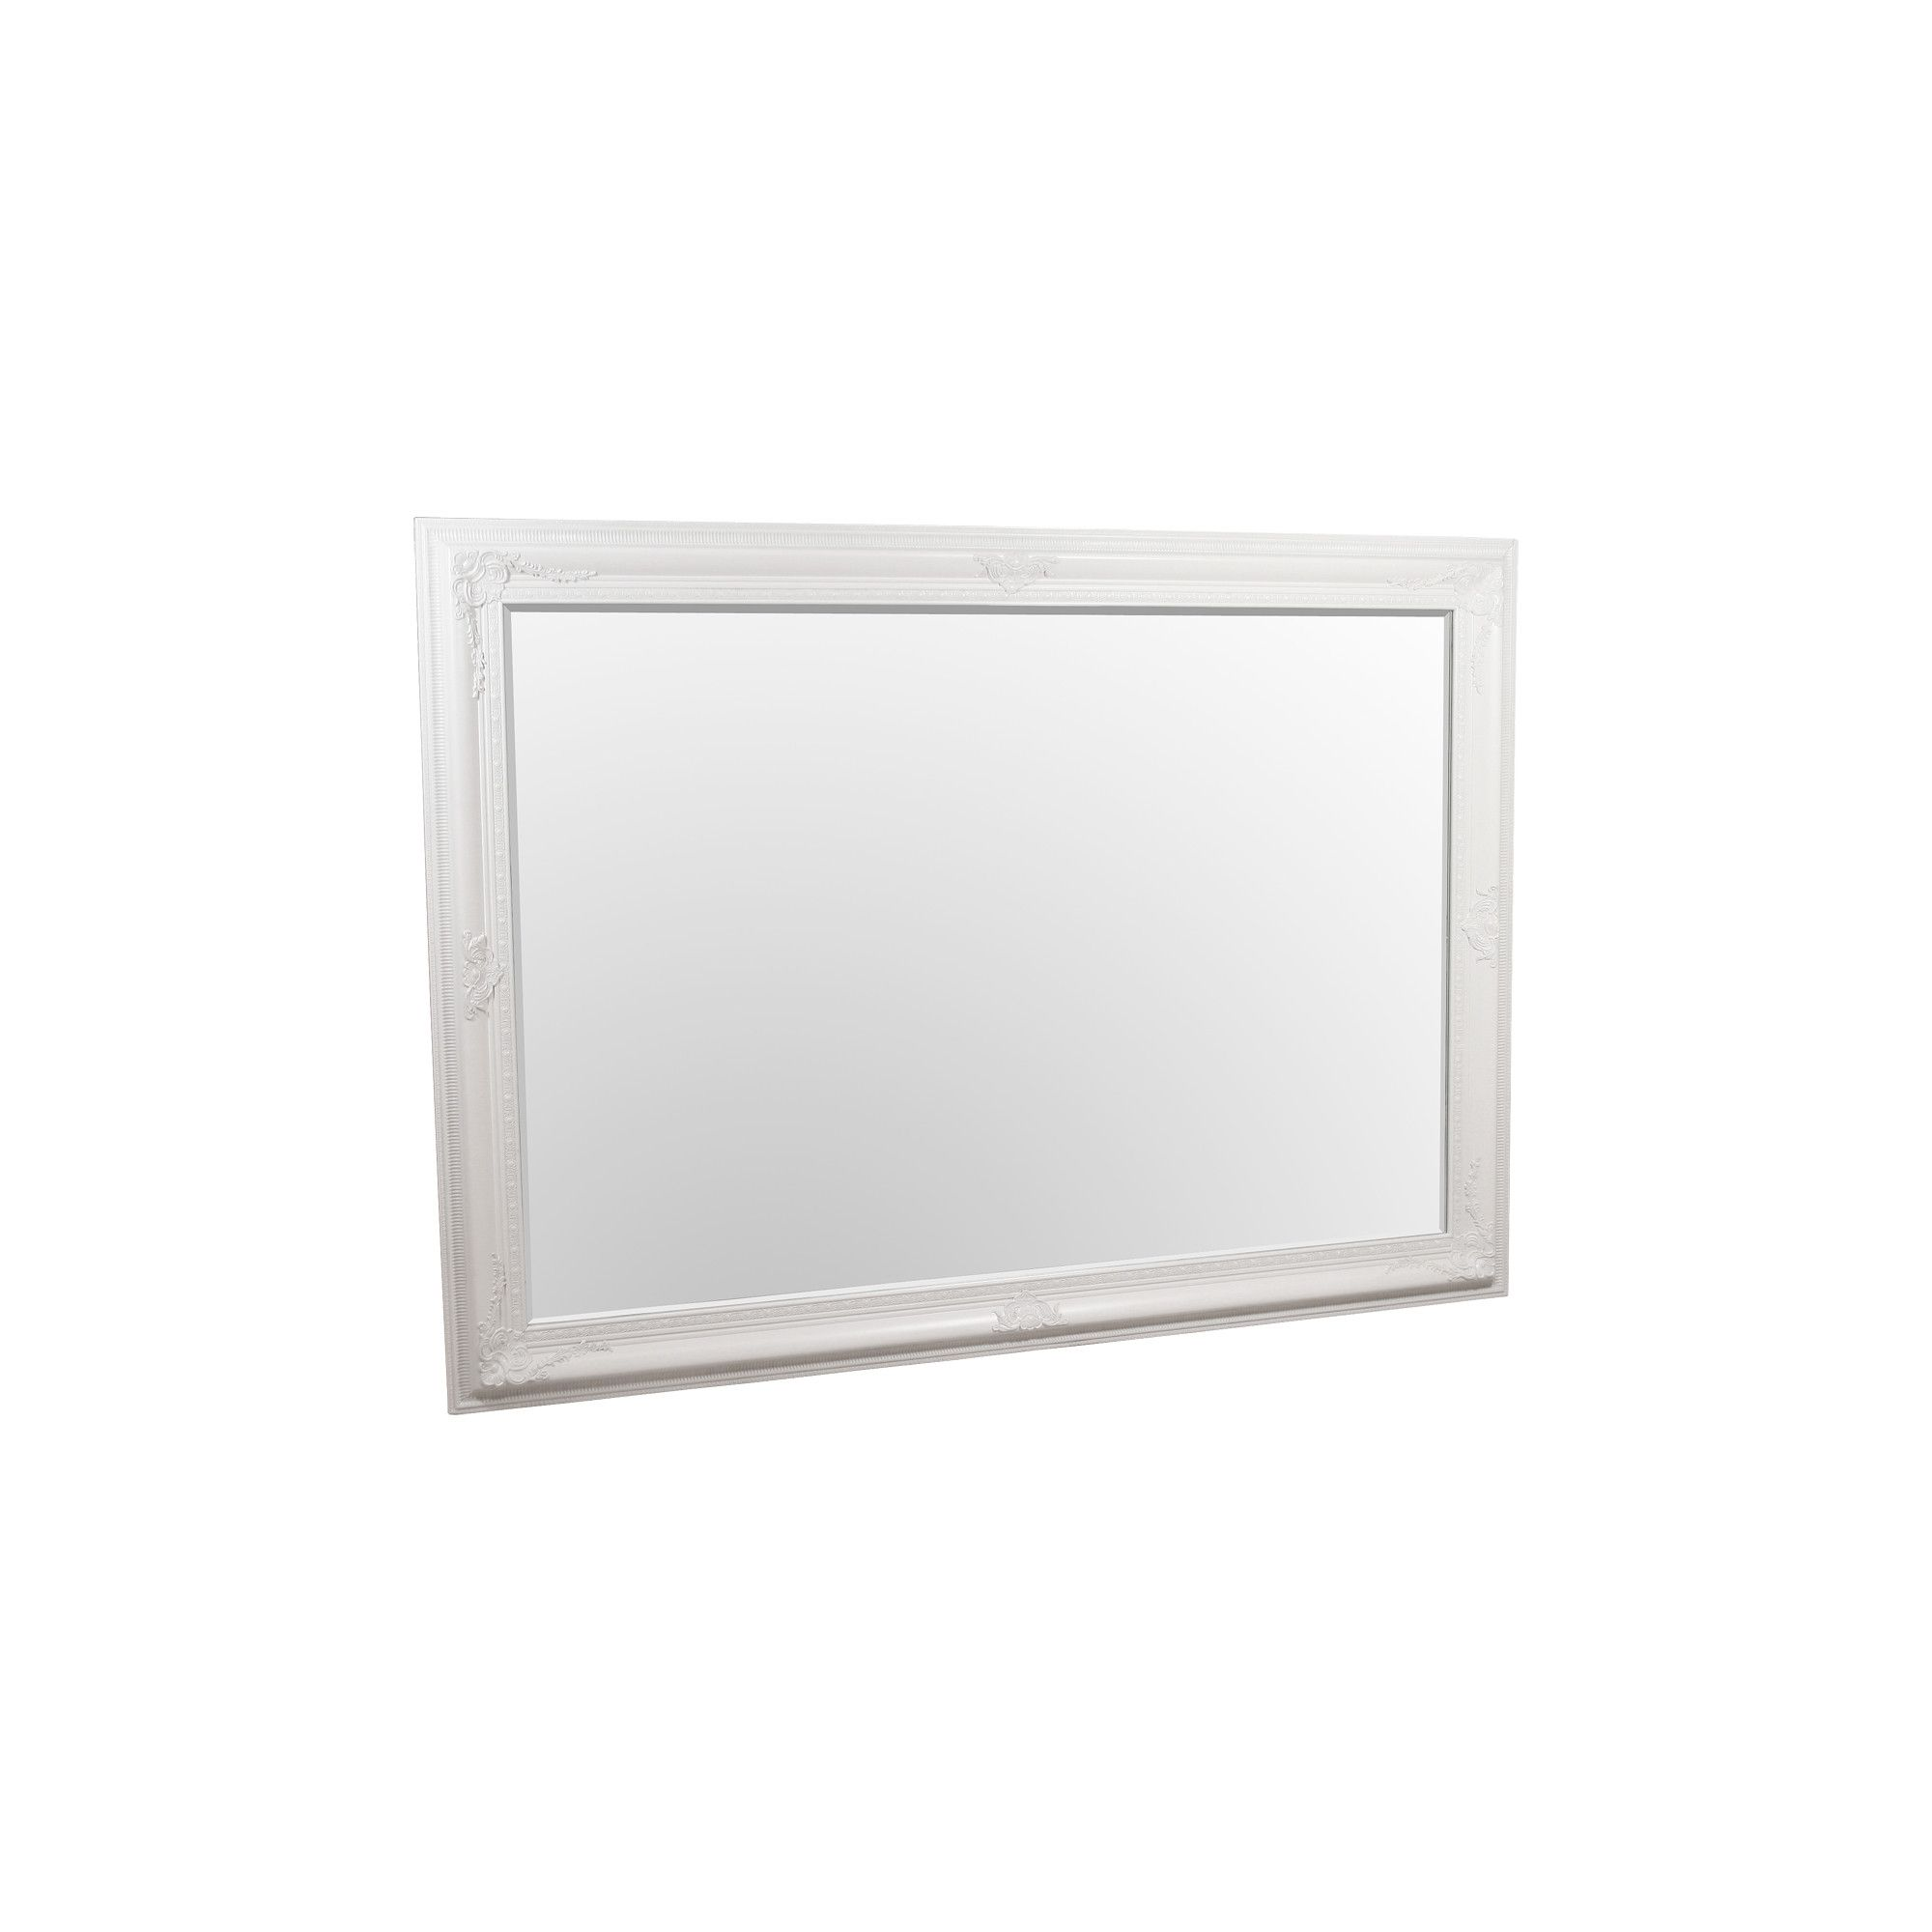 Home Essence Edward King Size Wall Mirror - White at Tesco Direct